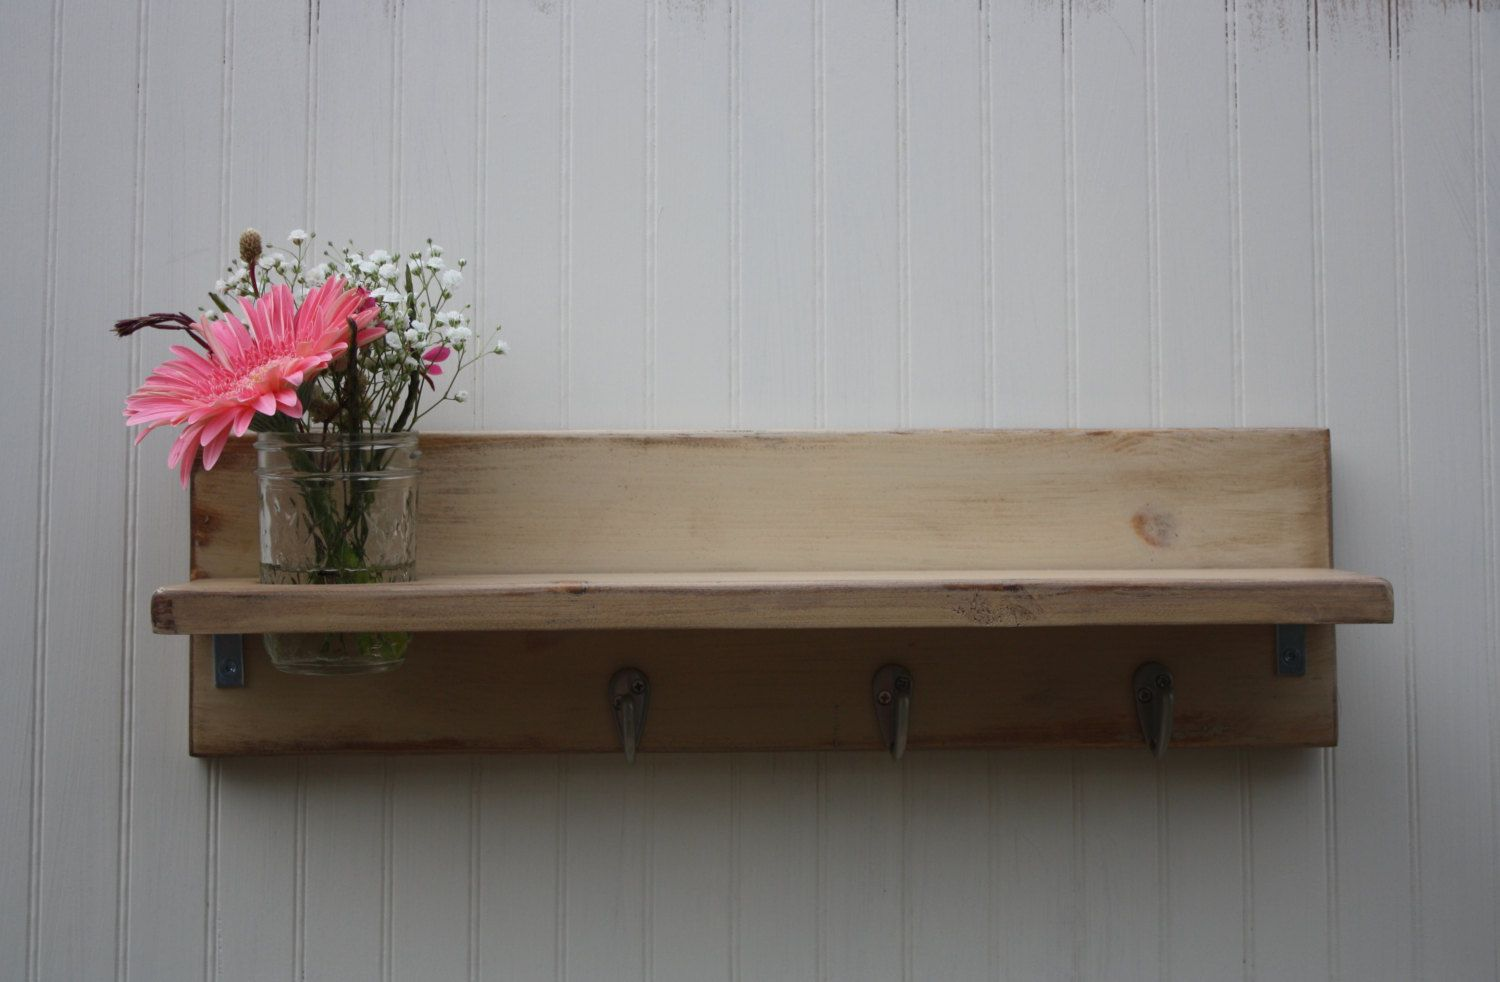 Wall shelf with hooks and mason jar vase or planter whitewashed wood